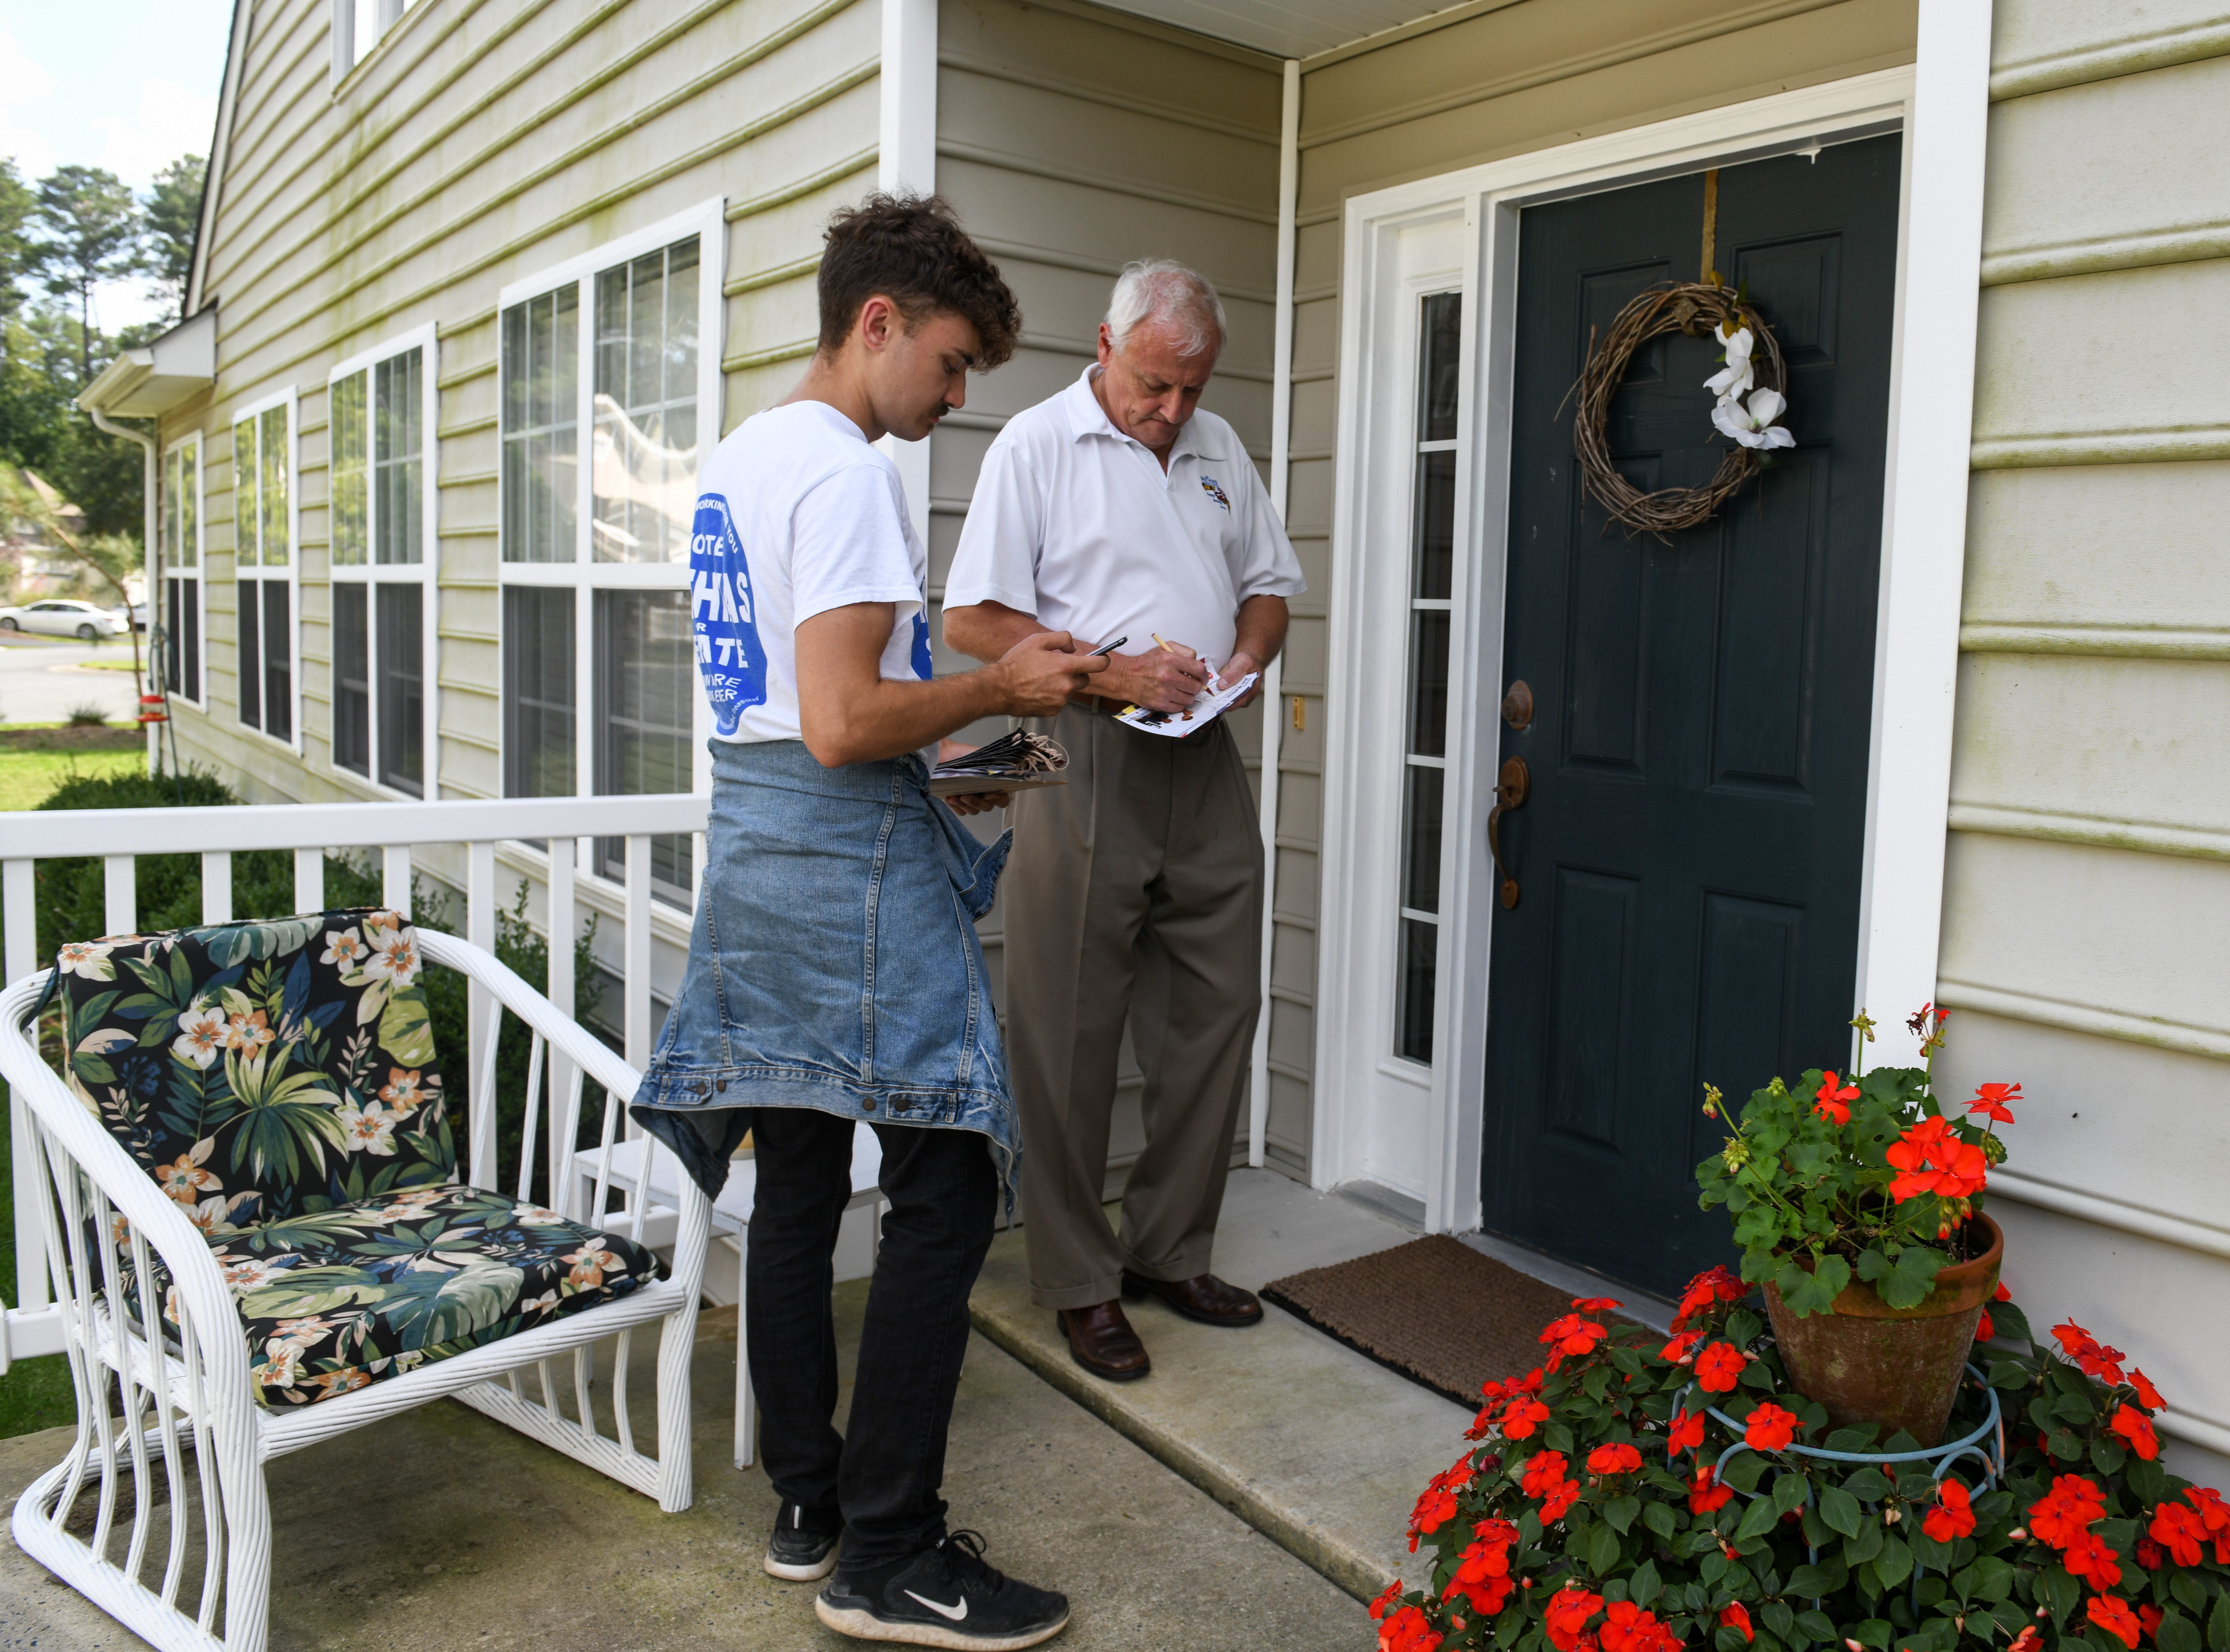 Sen. Jim Mathias, Democratic incumbent candidate for Maryland State Senate in District 38, leaves a note for a voter in Ocean Pines while campaigning with staffer Andrew Wilson on Tuesday, Oct 2, 2018.